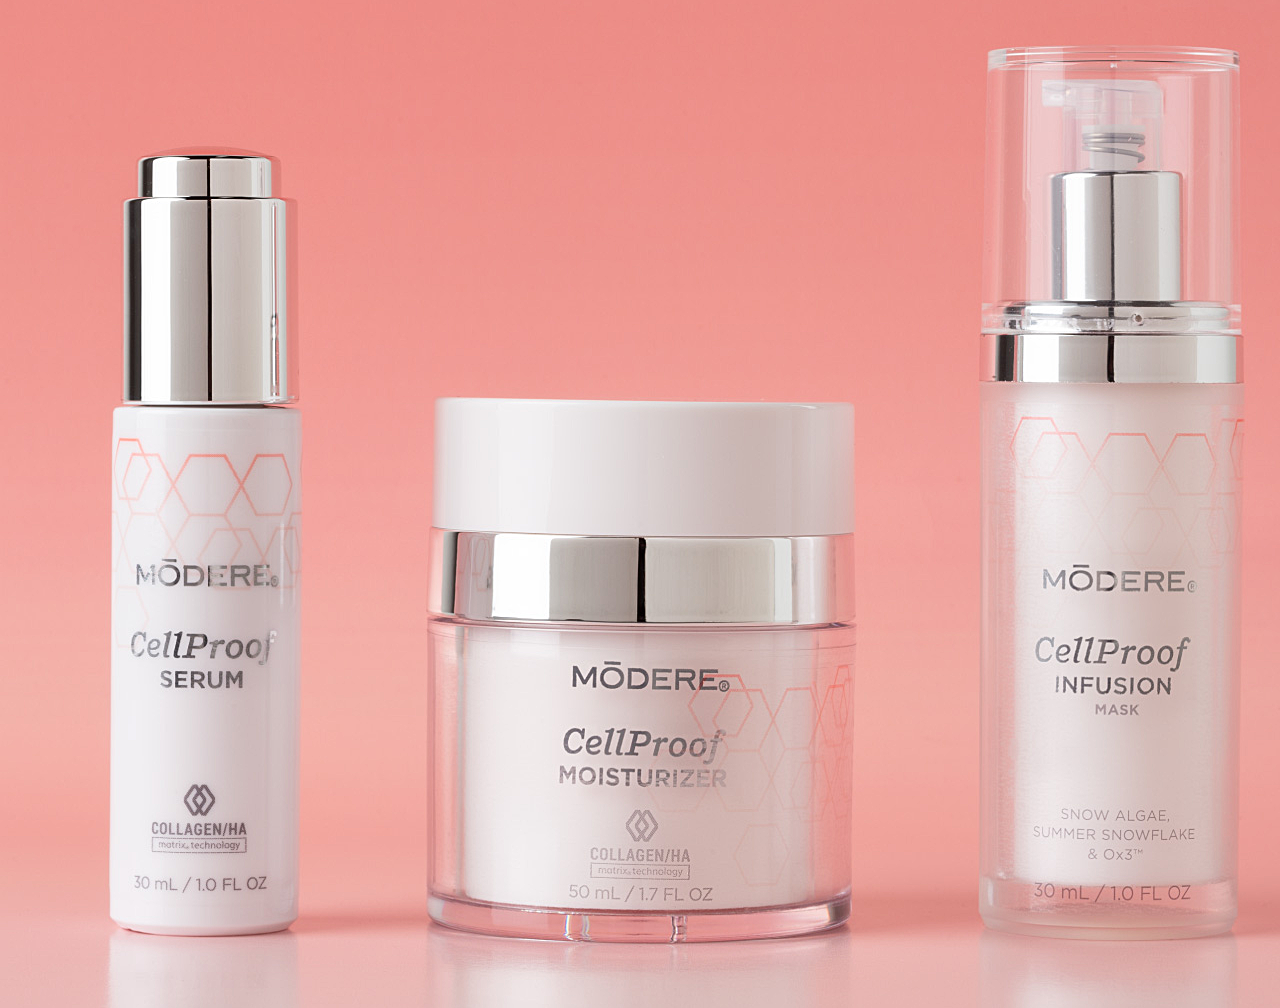 Modere Cellproof Essentials